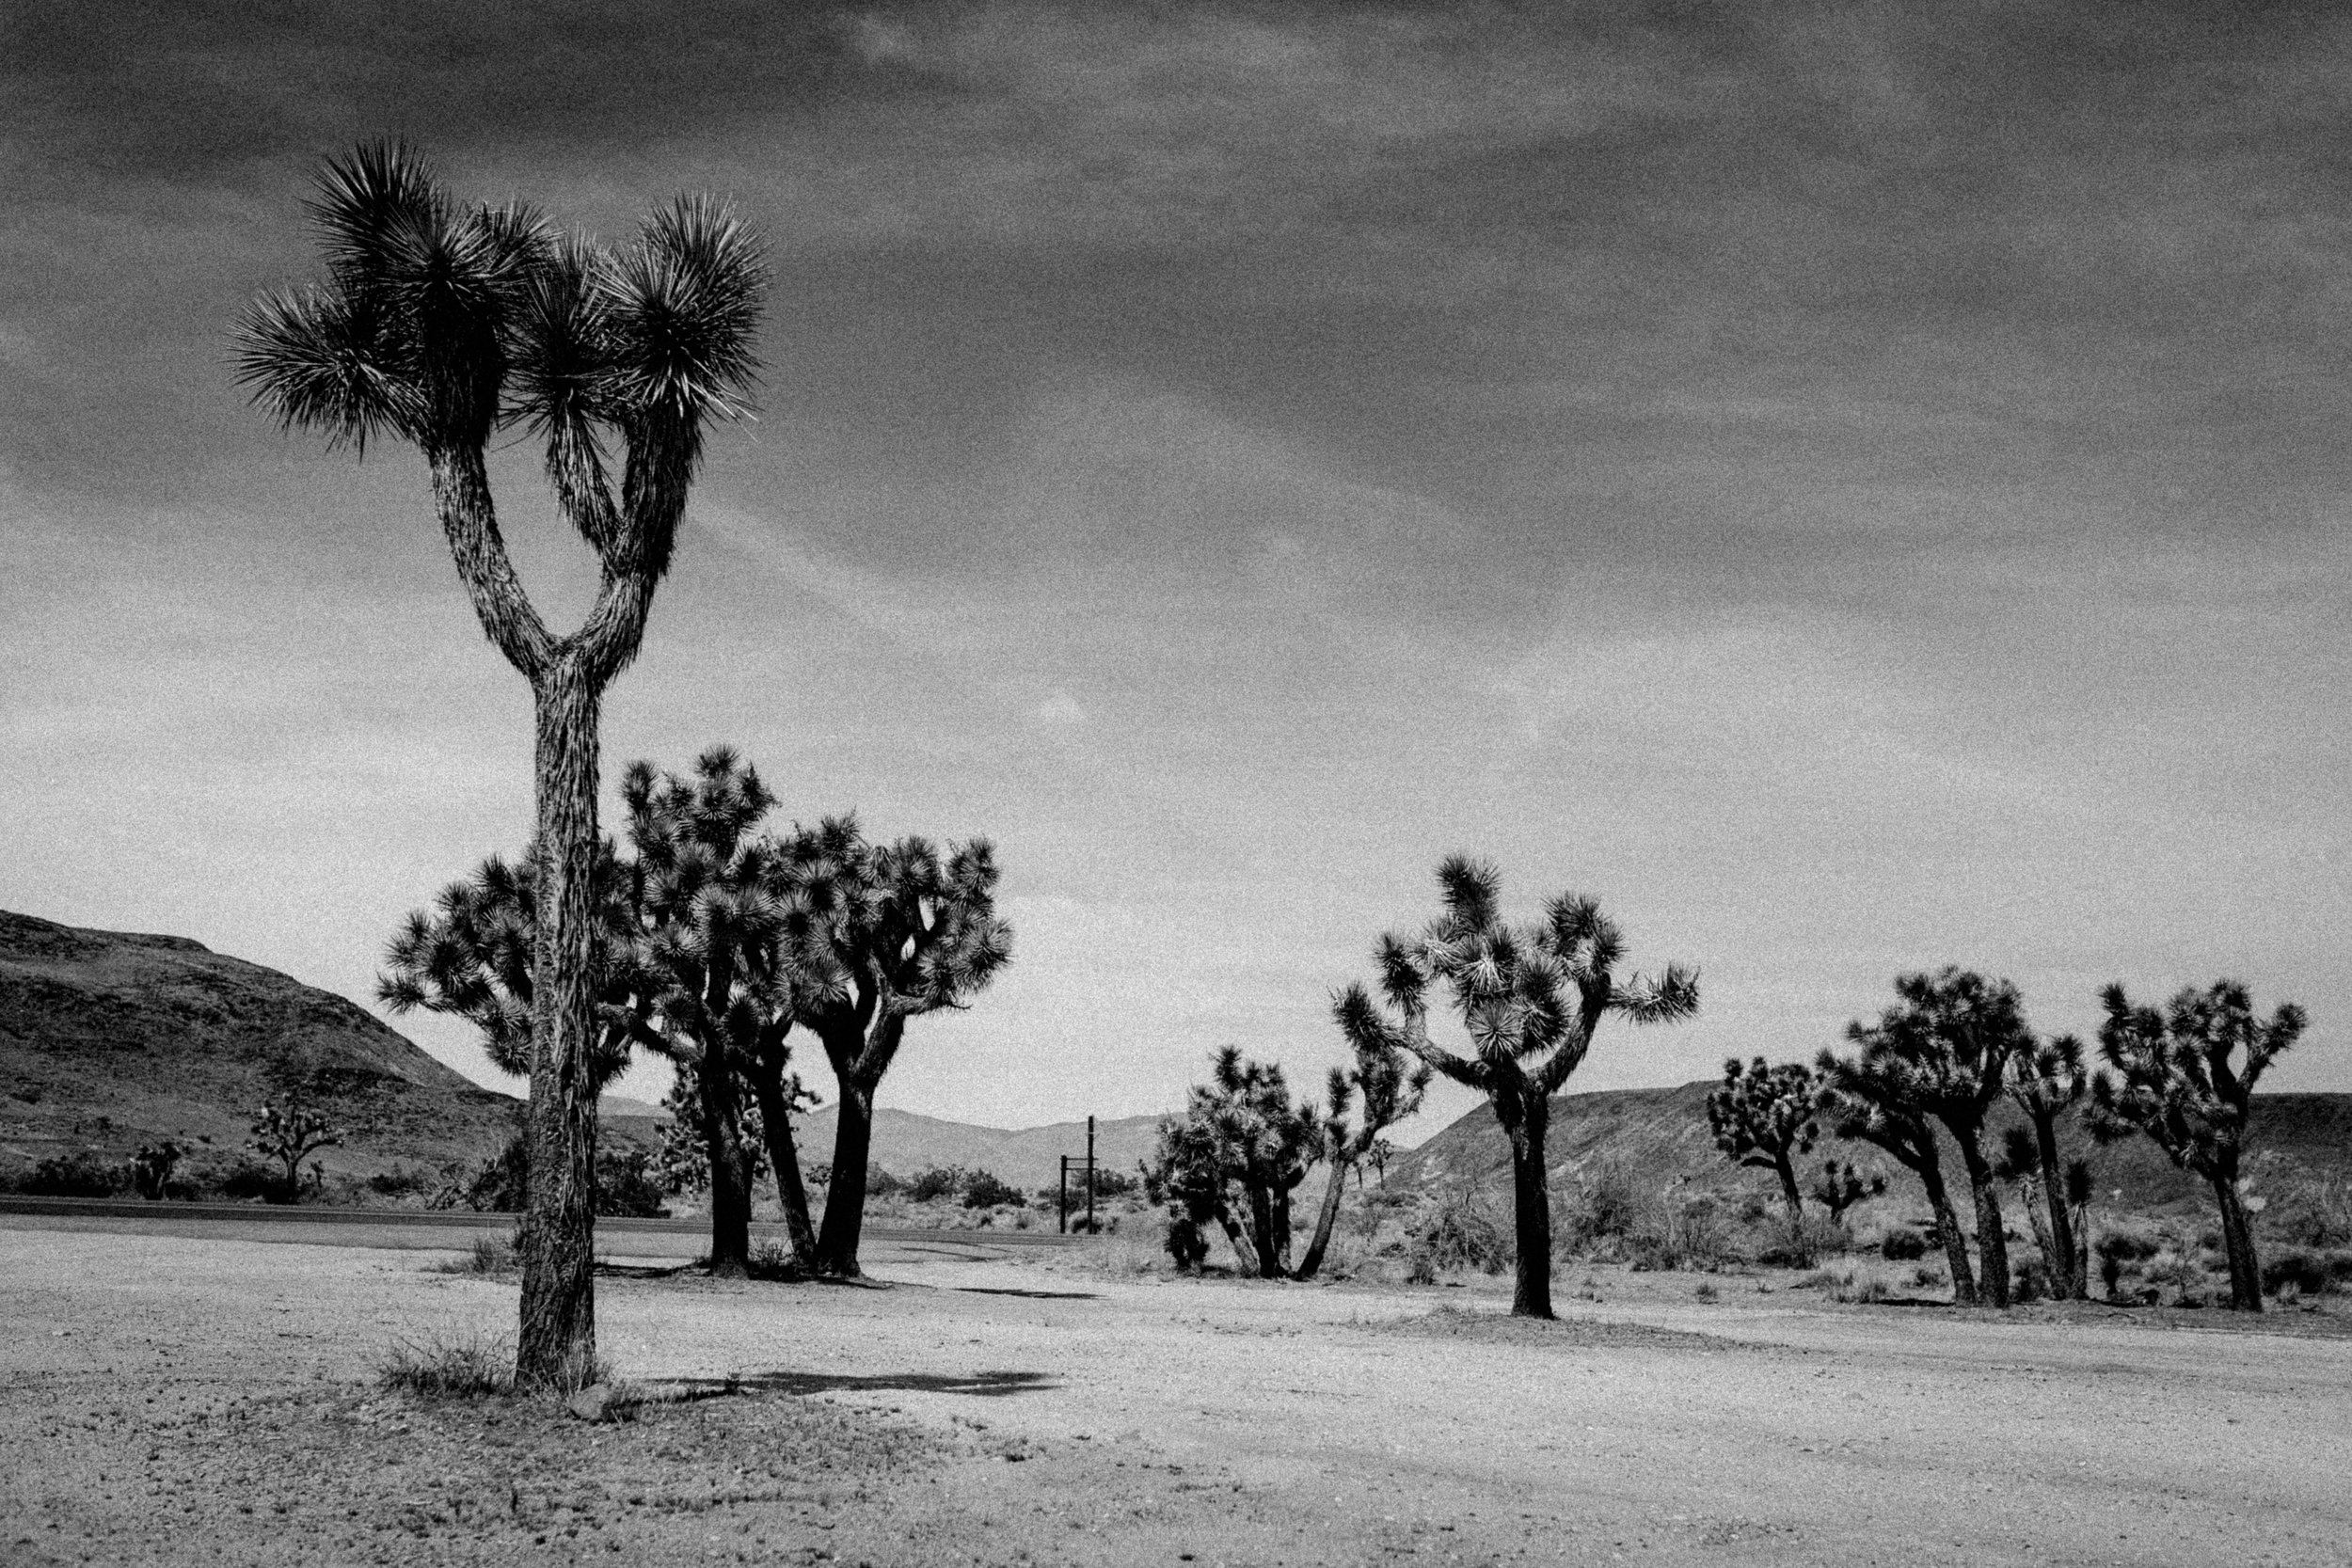 Joshua Trees - Yucca Valley, California